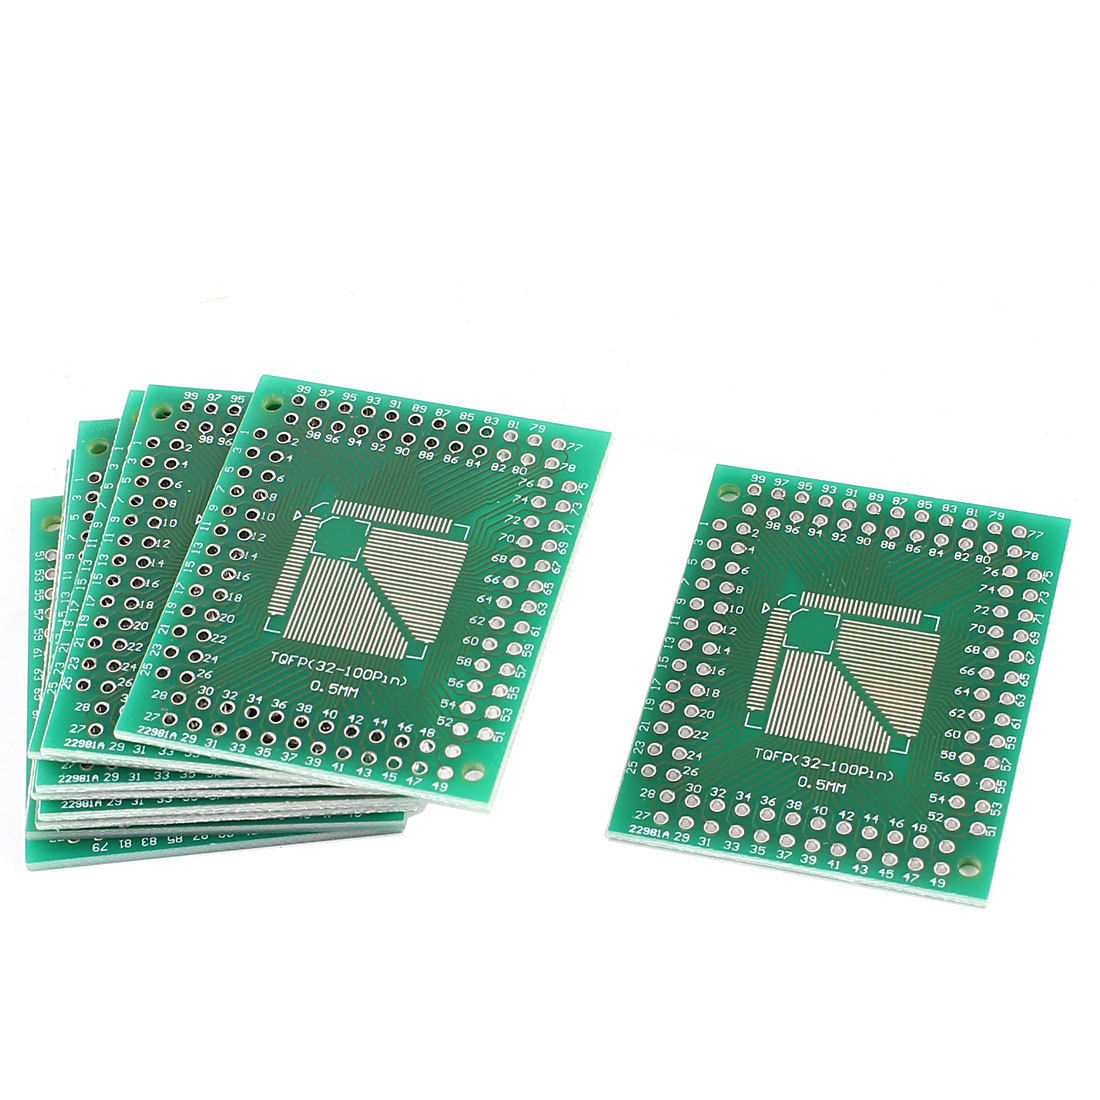 PCB Adapter Plate for TQFP32-100 Pin 0.5mm to TQFP32-64 Pin 0.8mm Board